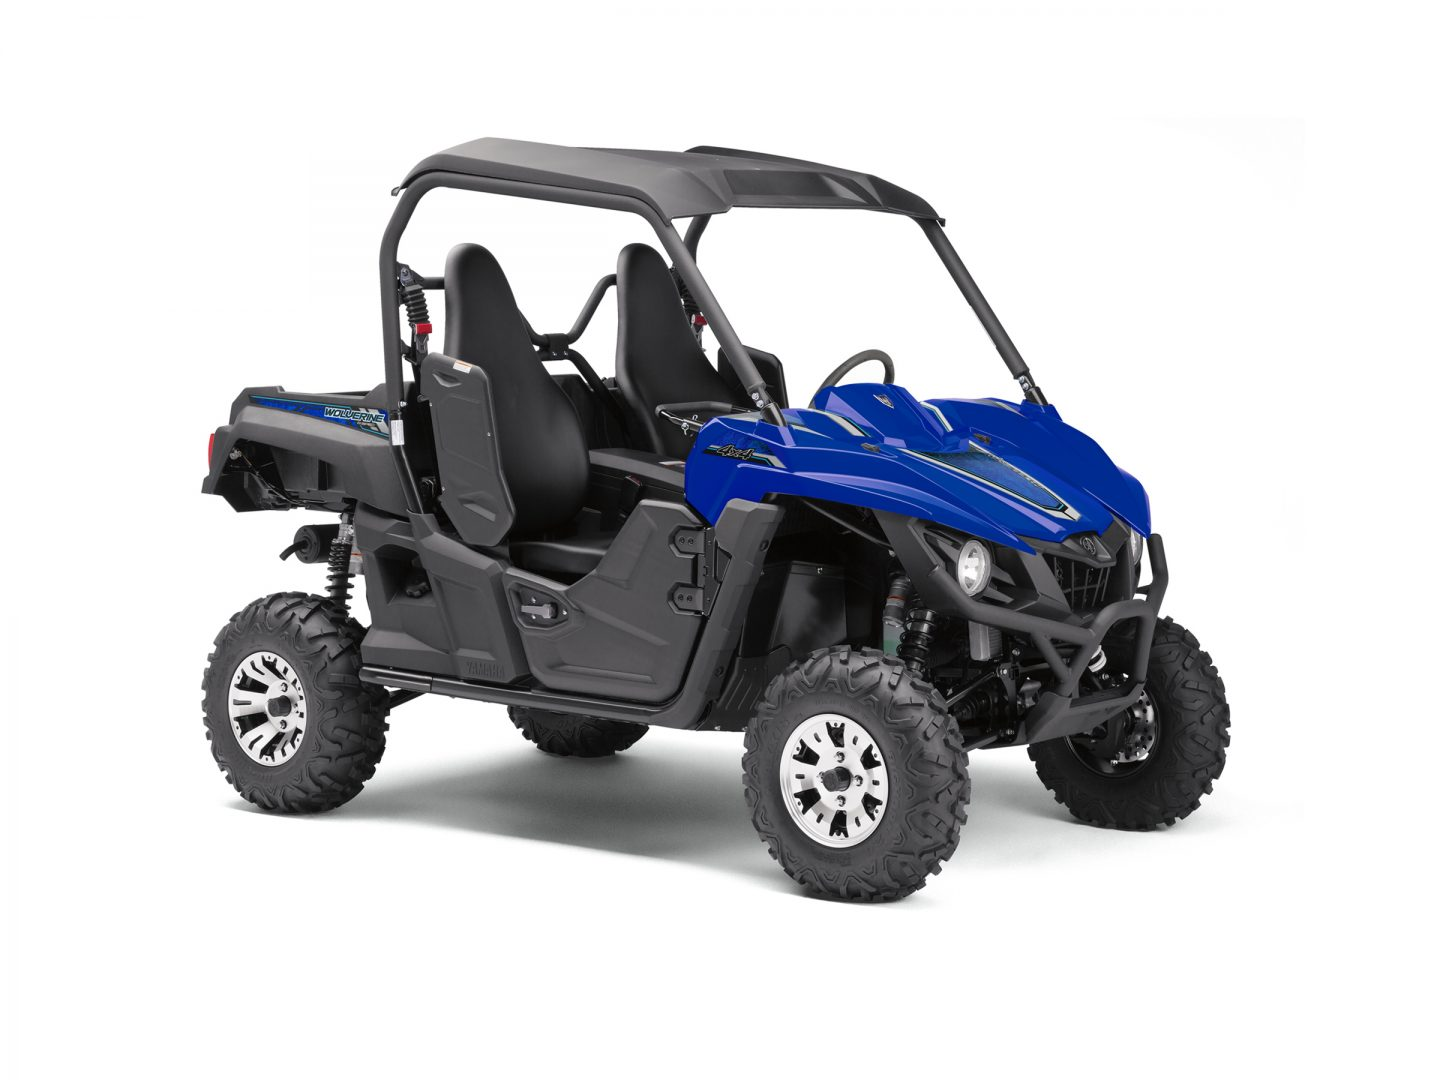 Yamaha WOLVERINE EPS R-SPEC completo